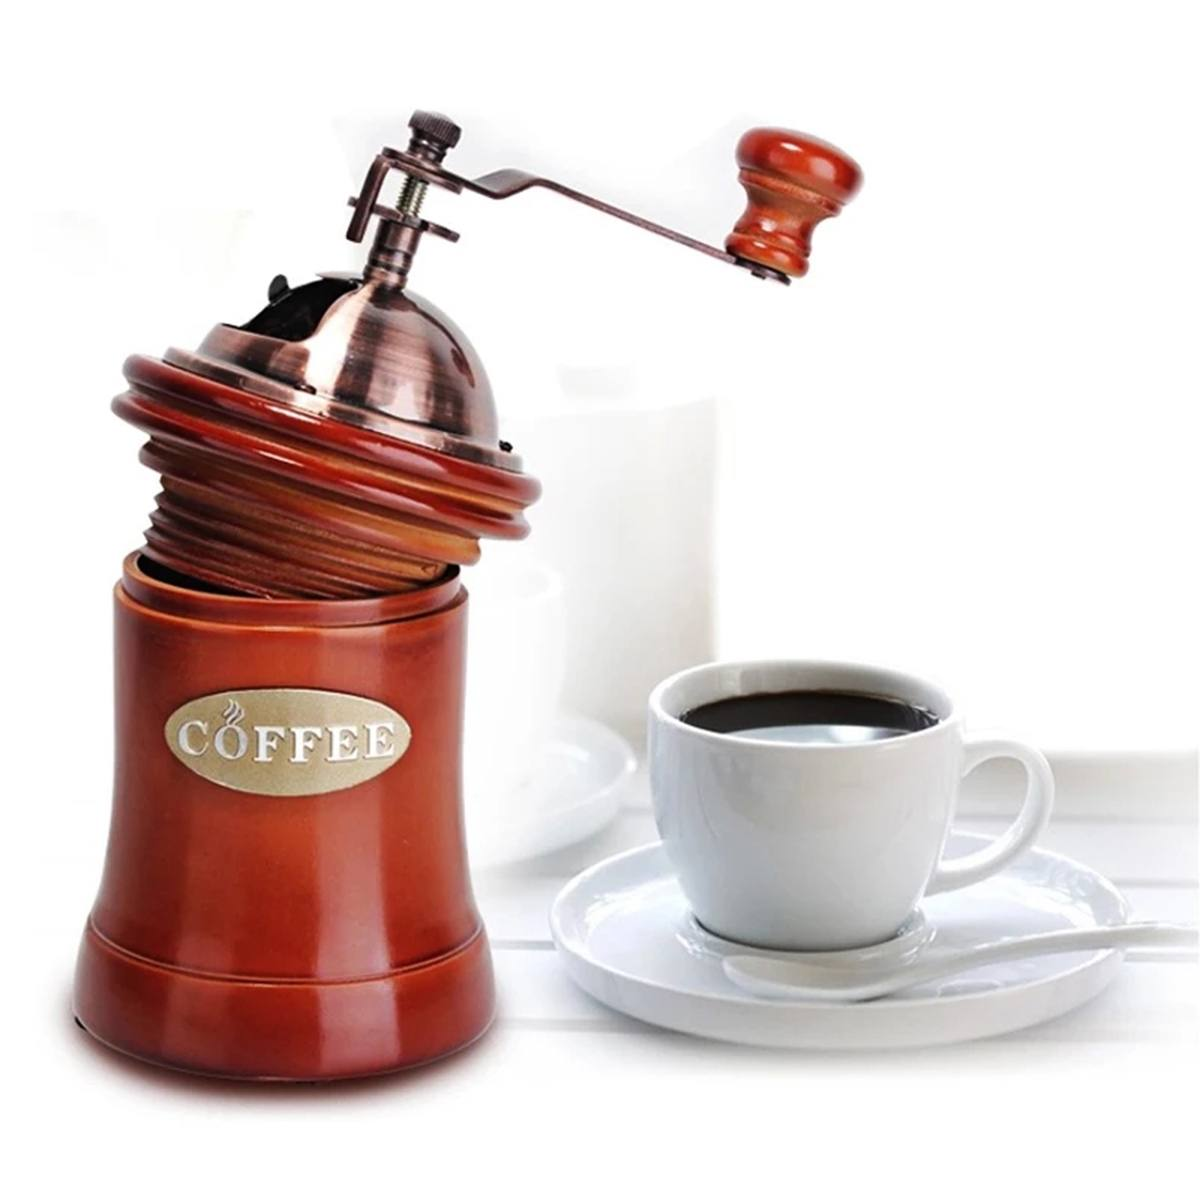 NEW Retro Wooden Manual Coffee Grinder Mini Manual Coffee Mill Beans Nuts Grinder With High-quality Ceramic Grinding Core